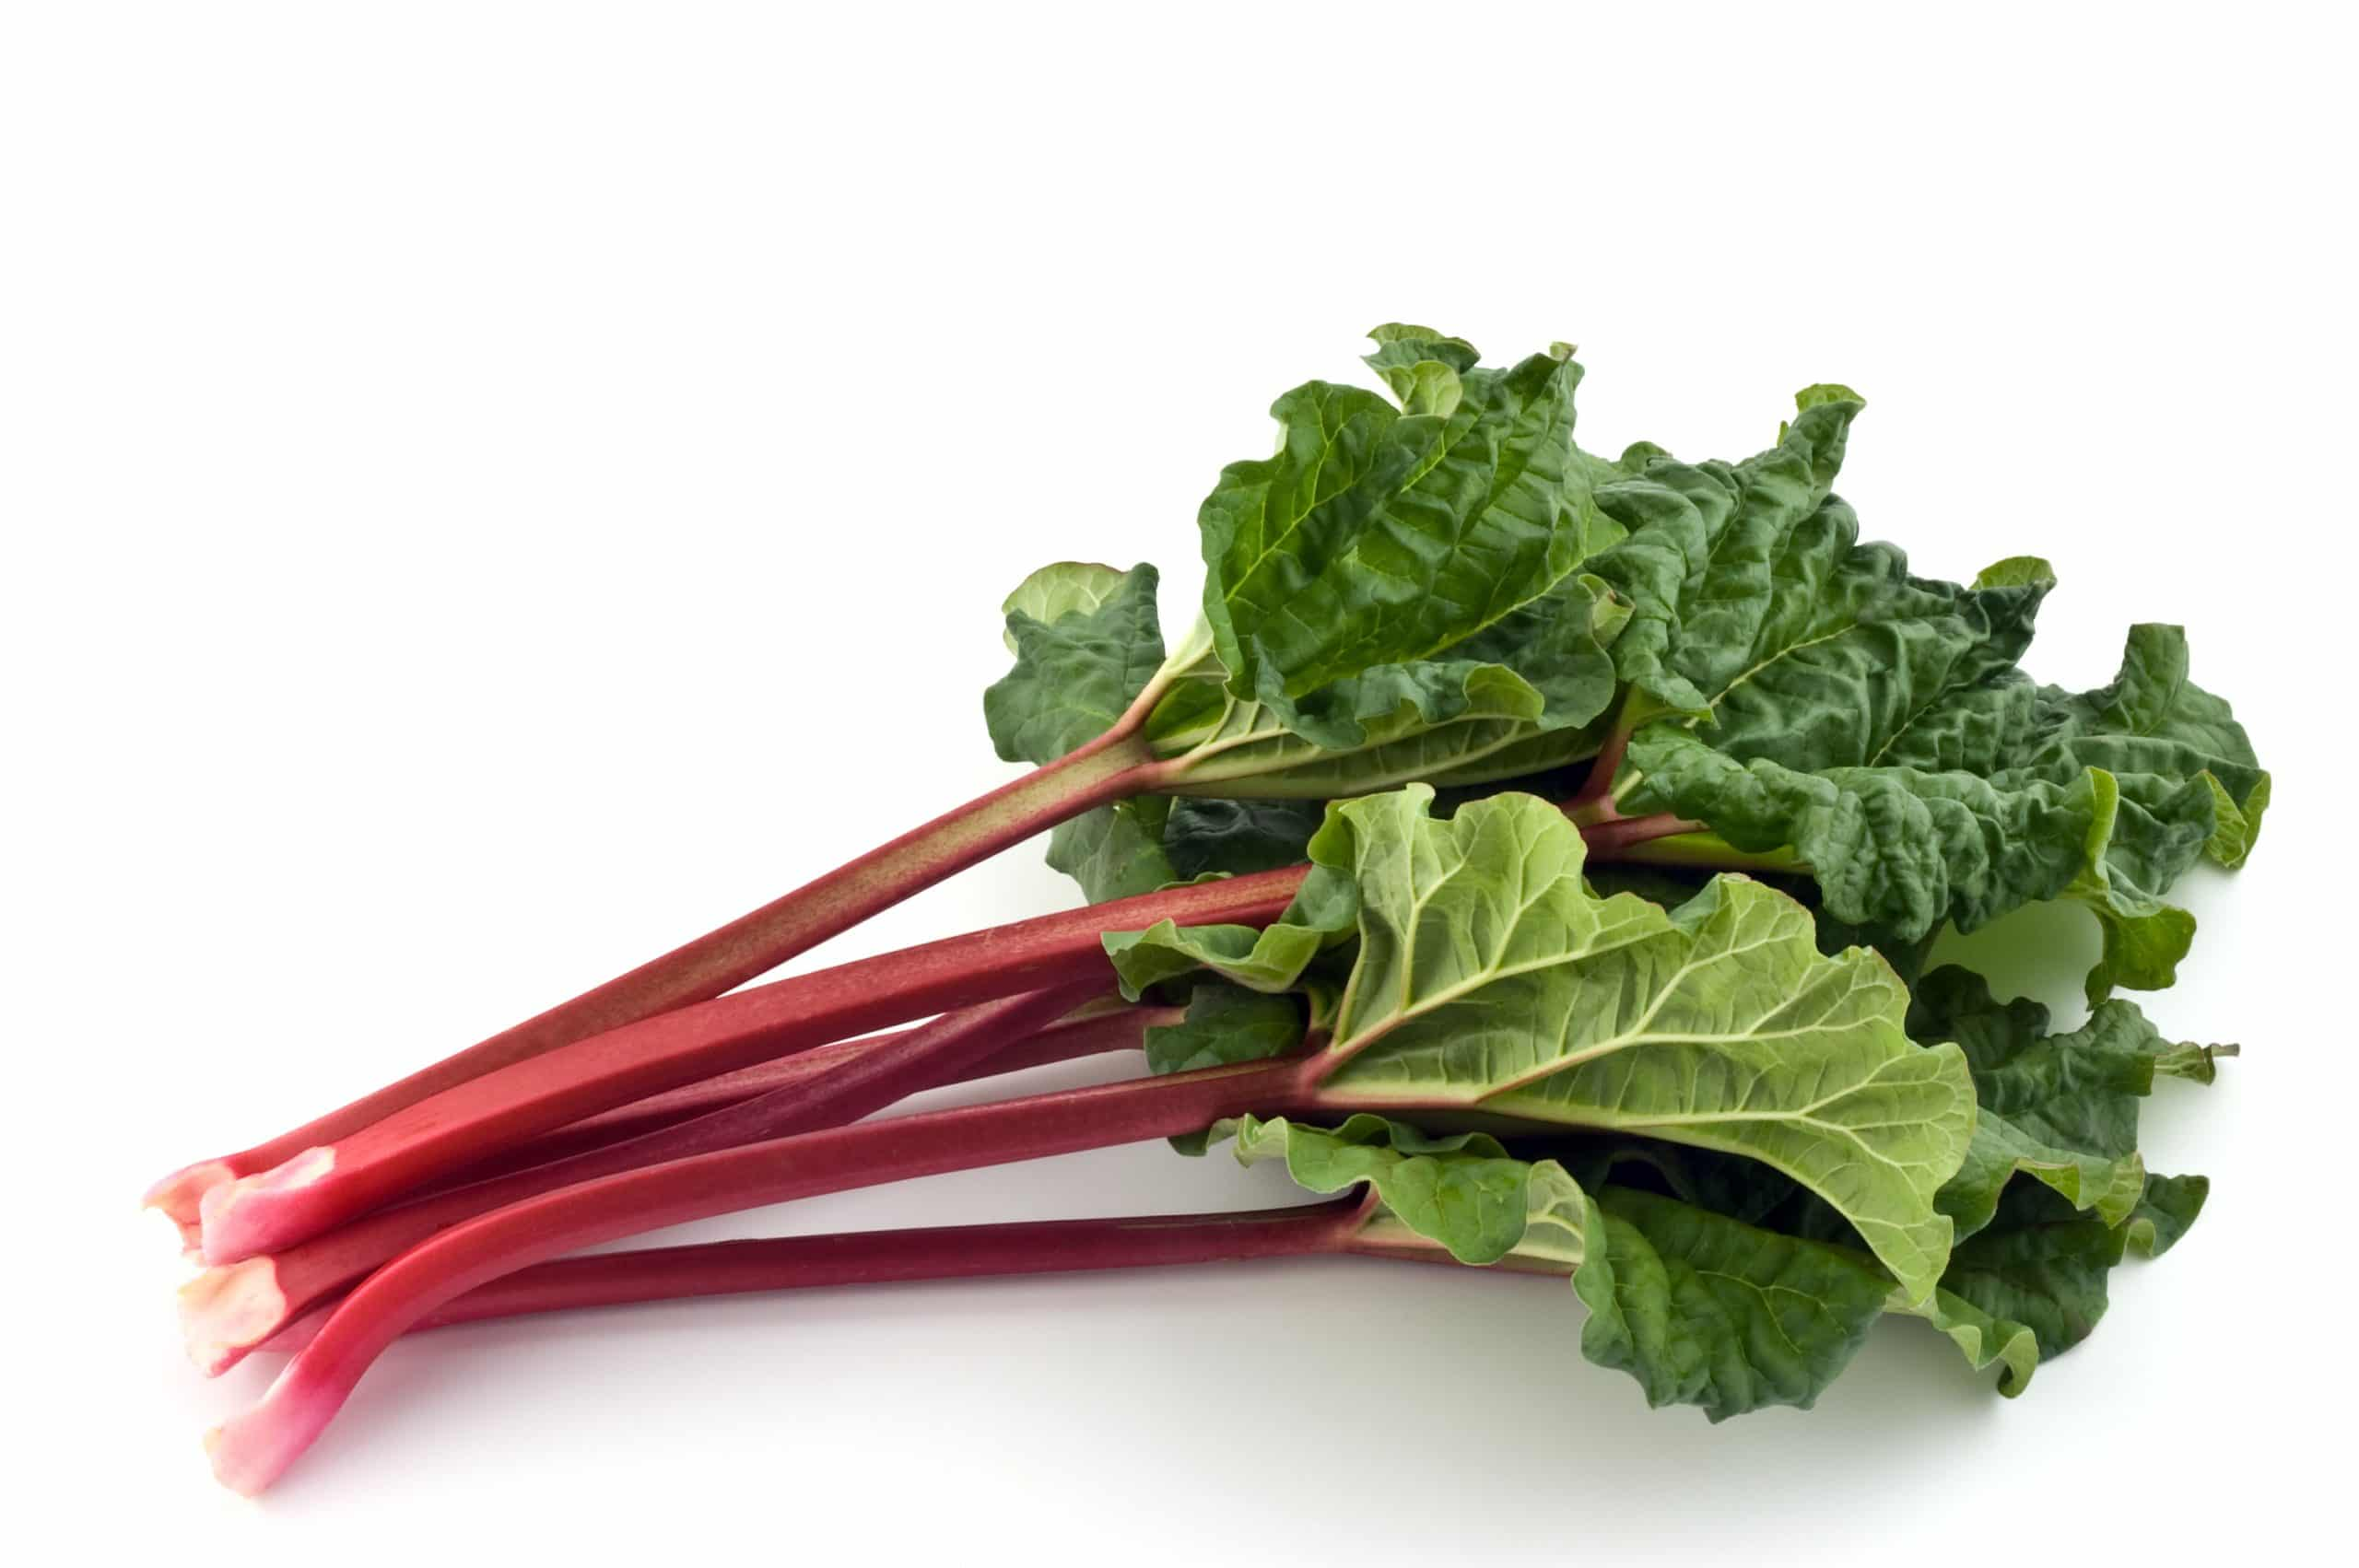 Bunch of fresh picked organic rhubarb isolated on white background